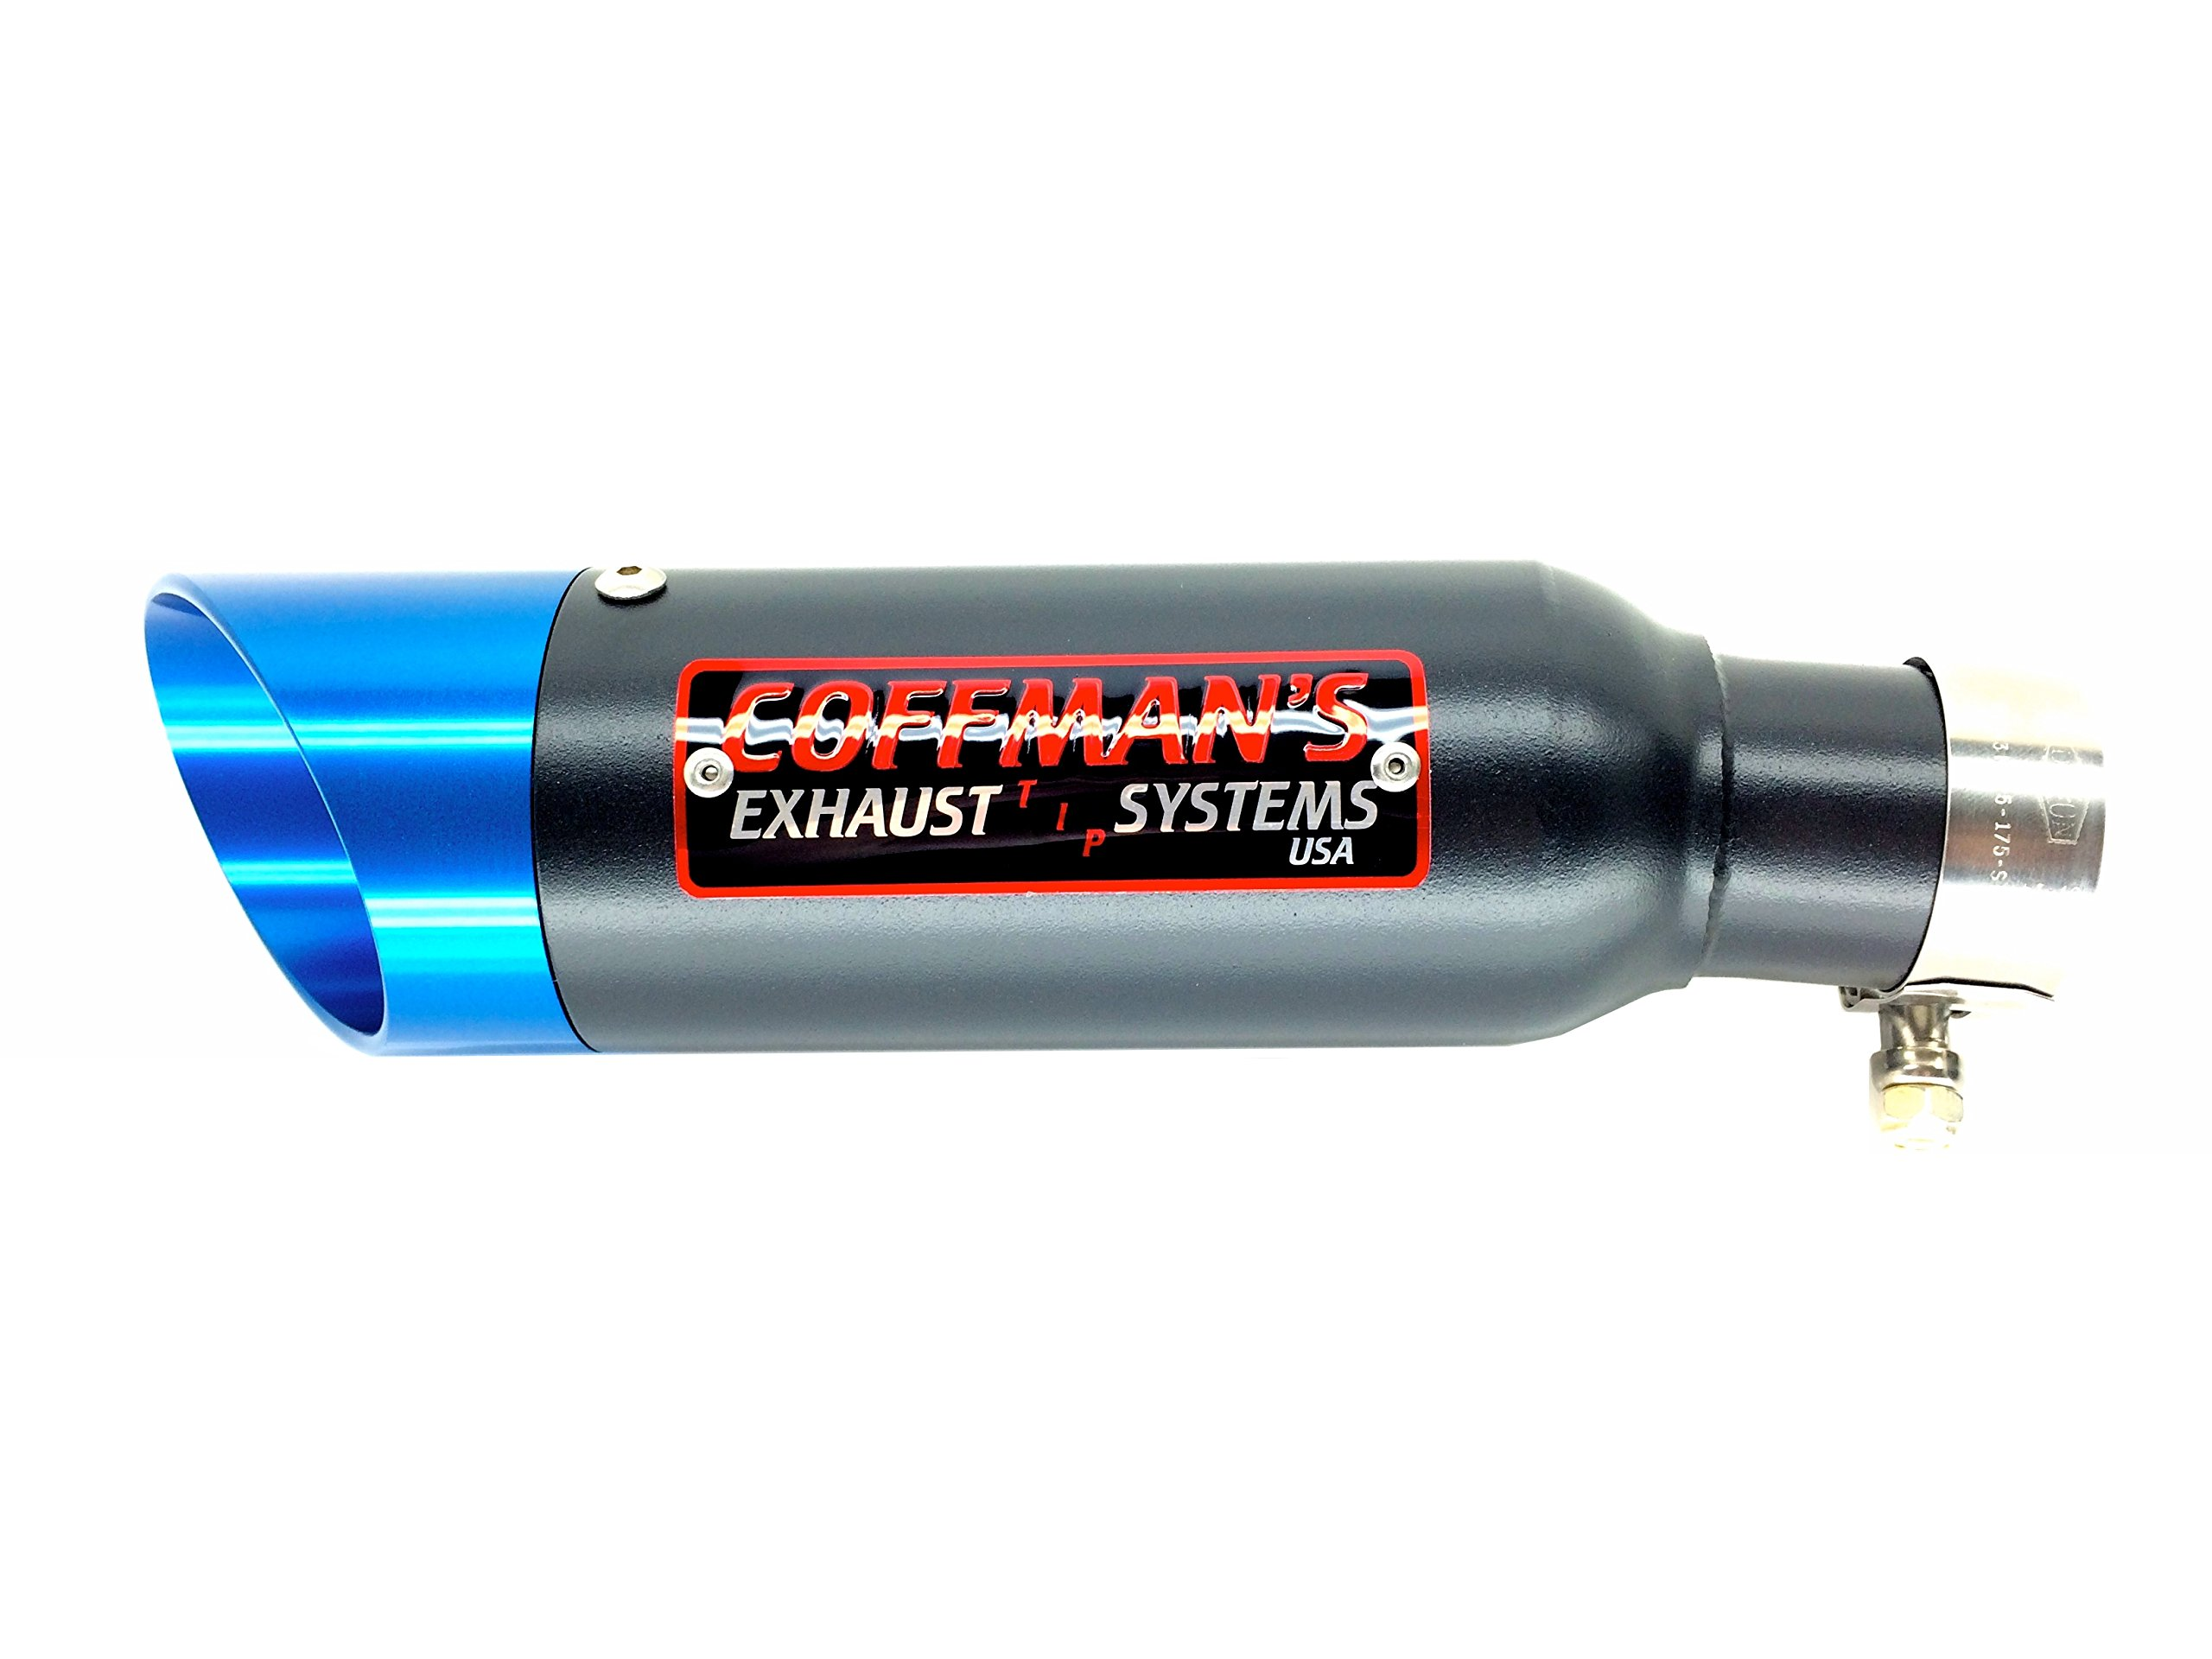 Coffman's Shorty Exhaust for Honda CBR500R (2013-16) Sportbike with Blue Tip by Coffman's